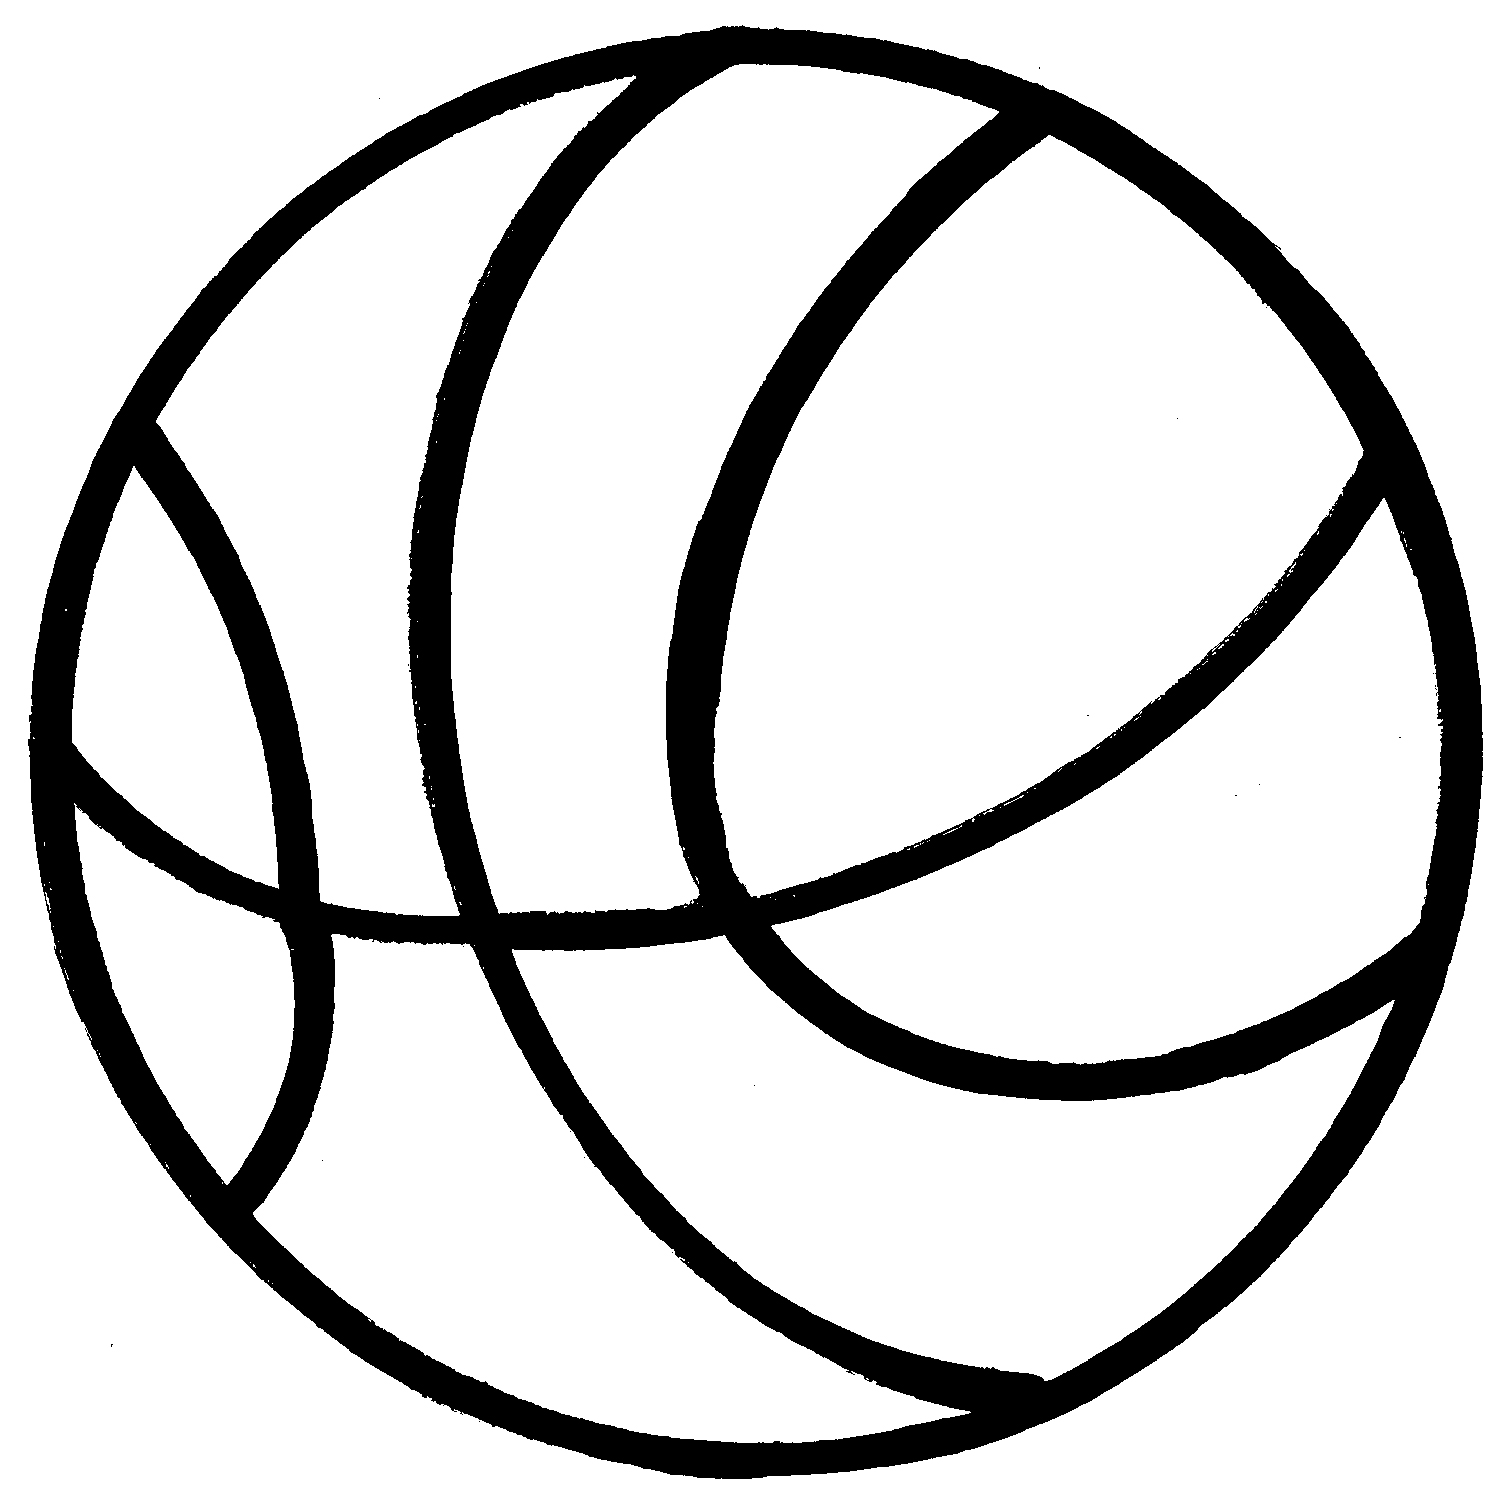 Basketball images black and white